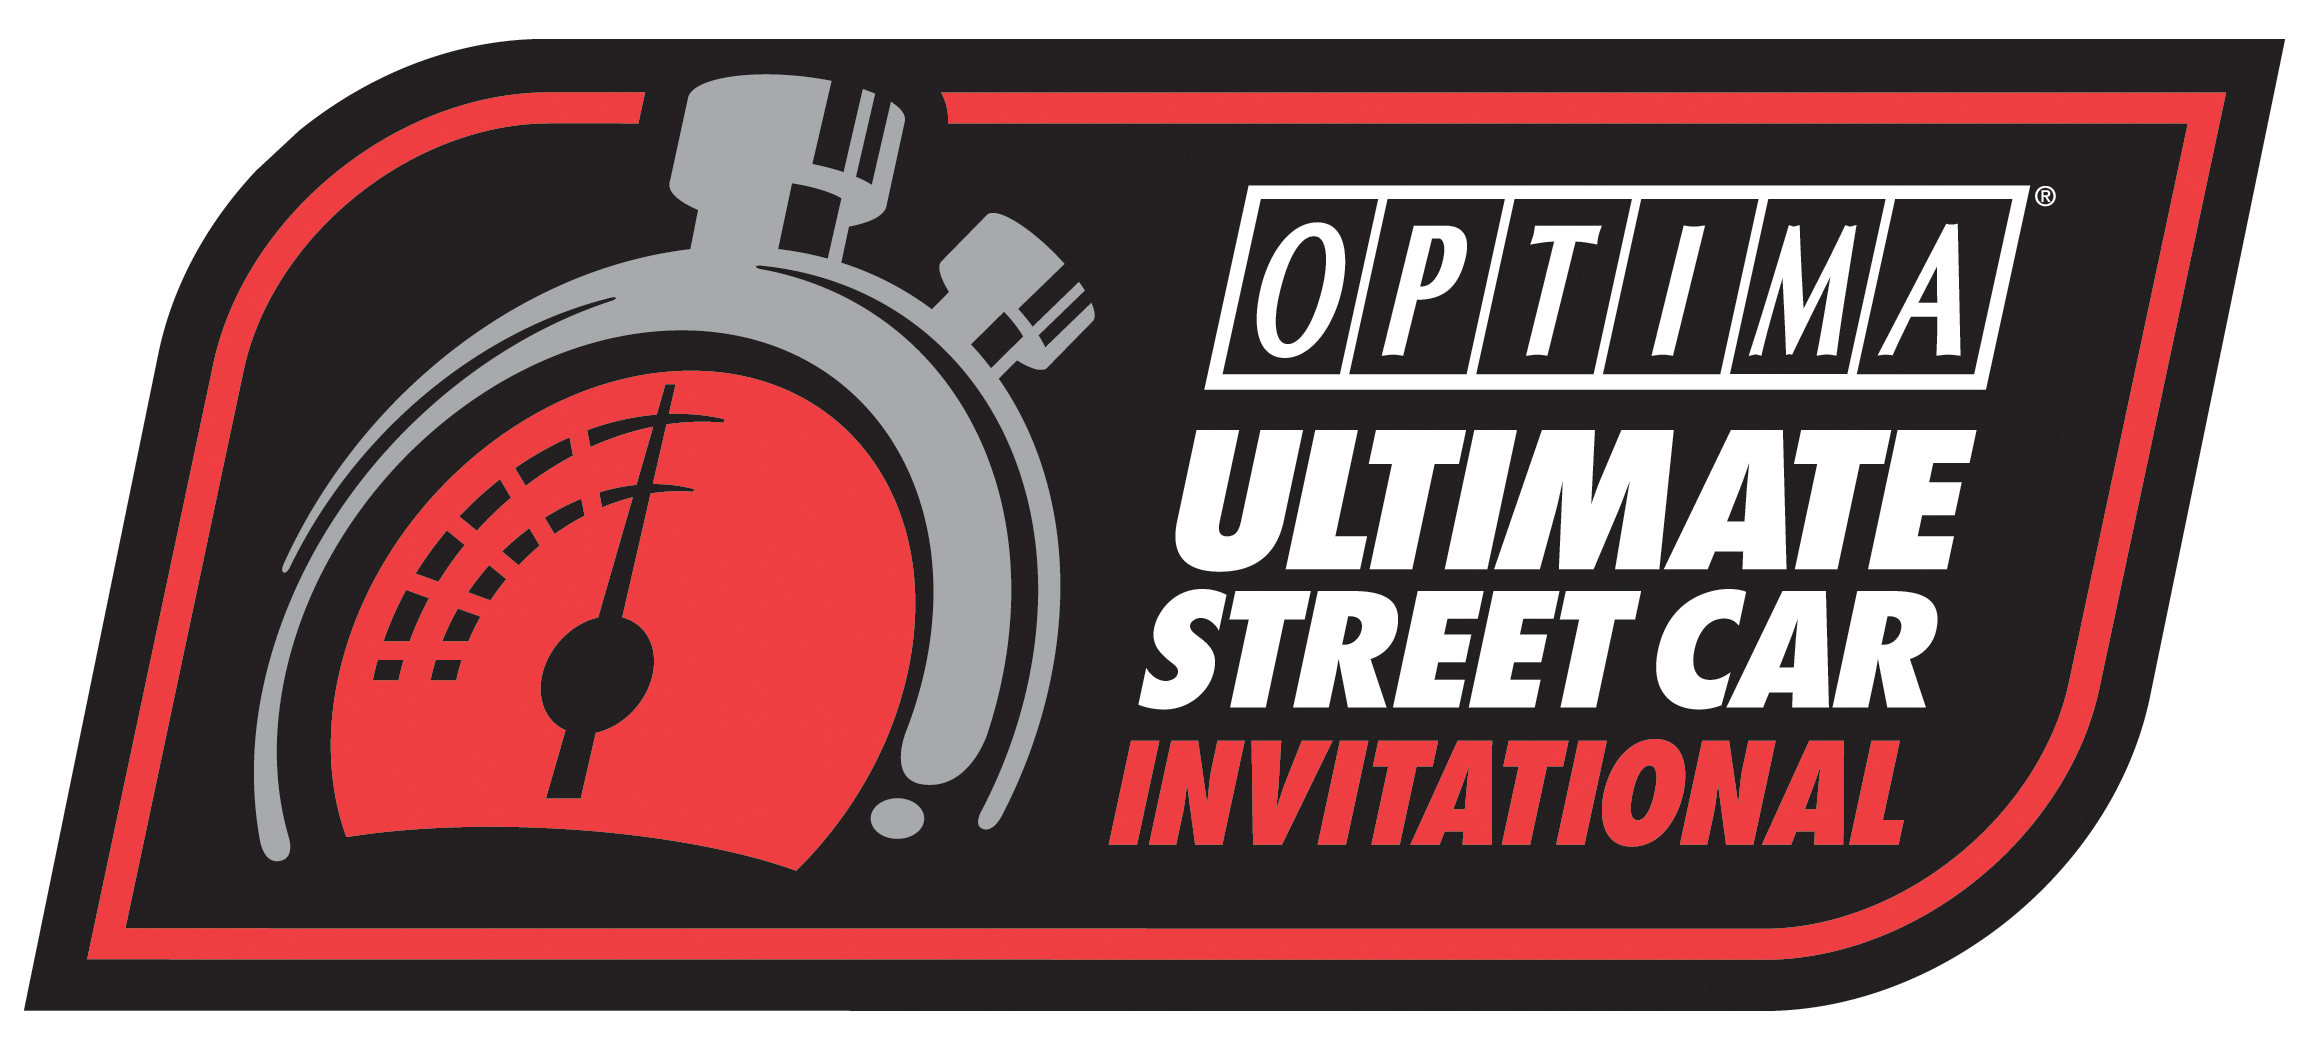 Optima Ultimate Street Car, cars for street racing, street car invitational